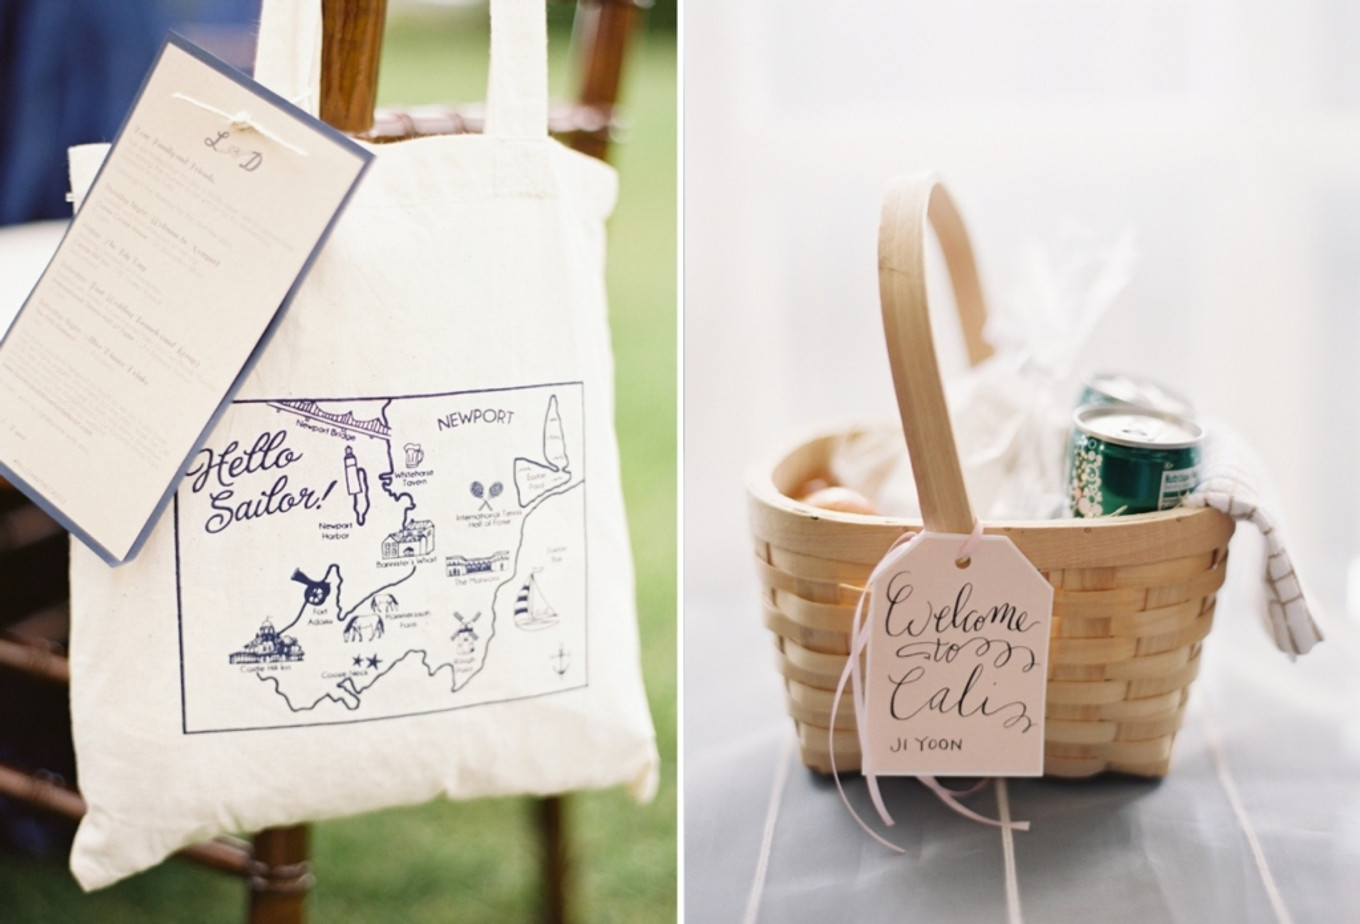 Creative Wedding Favor Ideas That Your Guests Will Enjoy ...